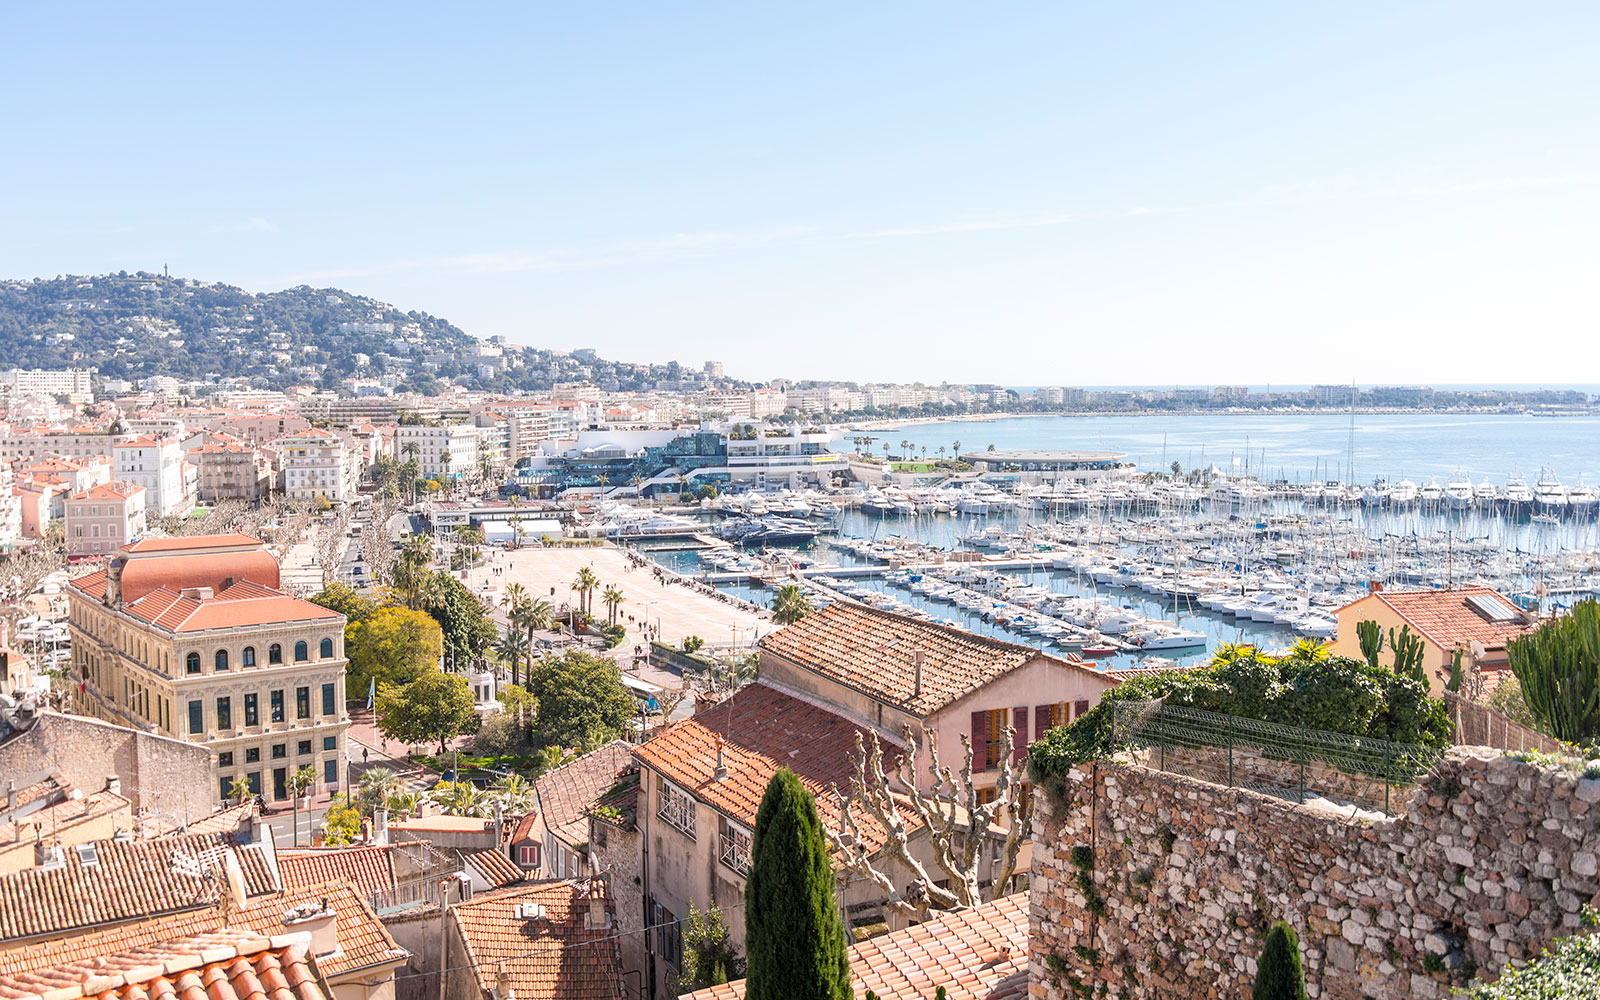 10. Cannes, France